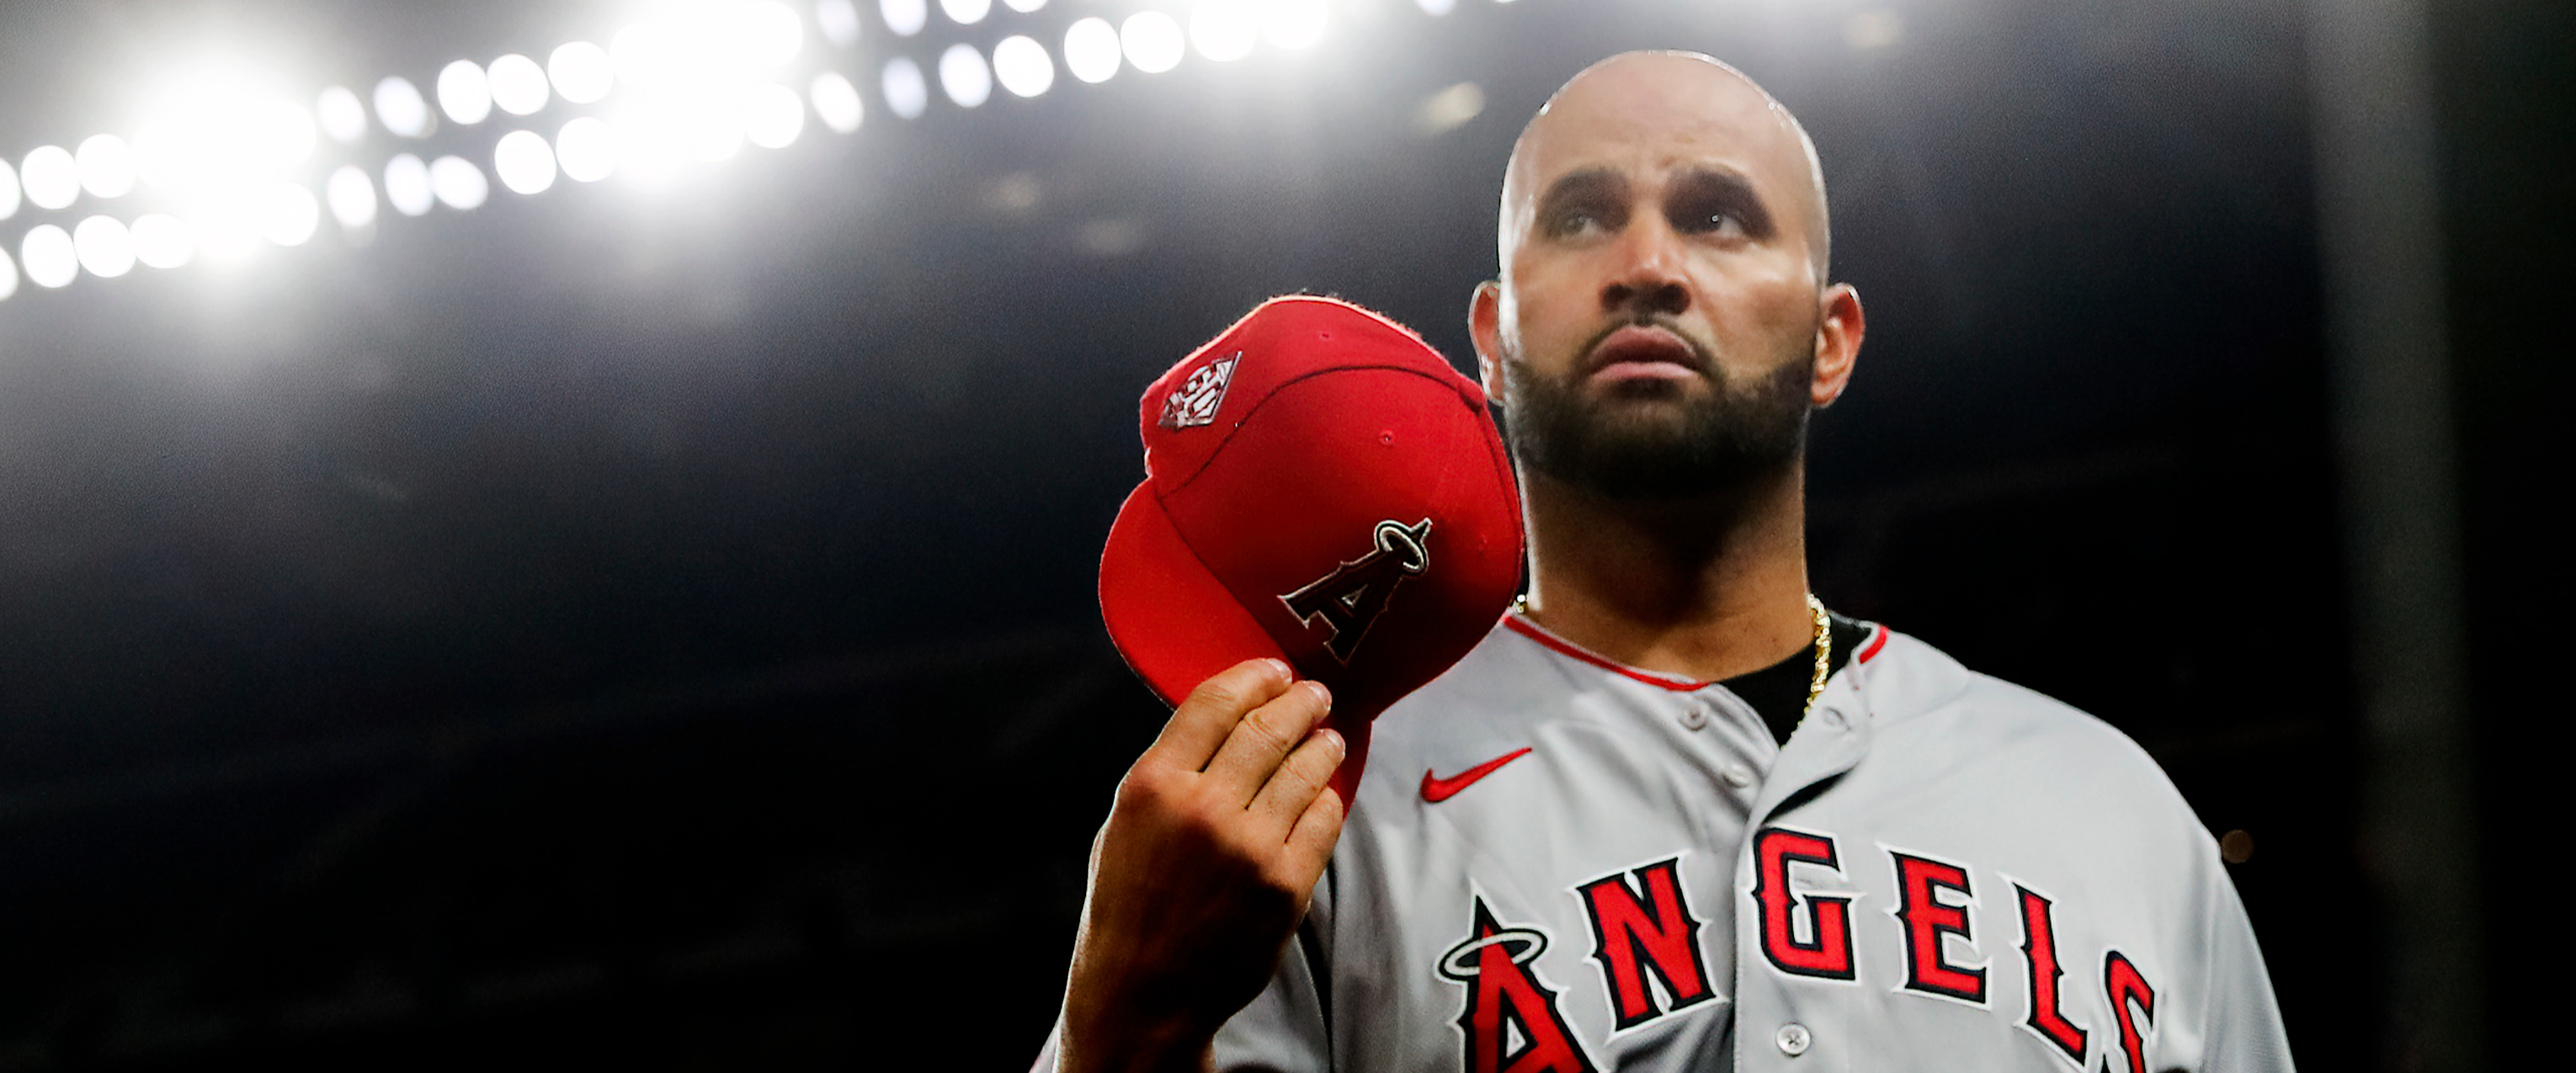 Will anyone take a chance on Albert Pujols?